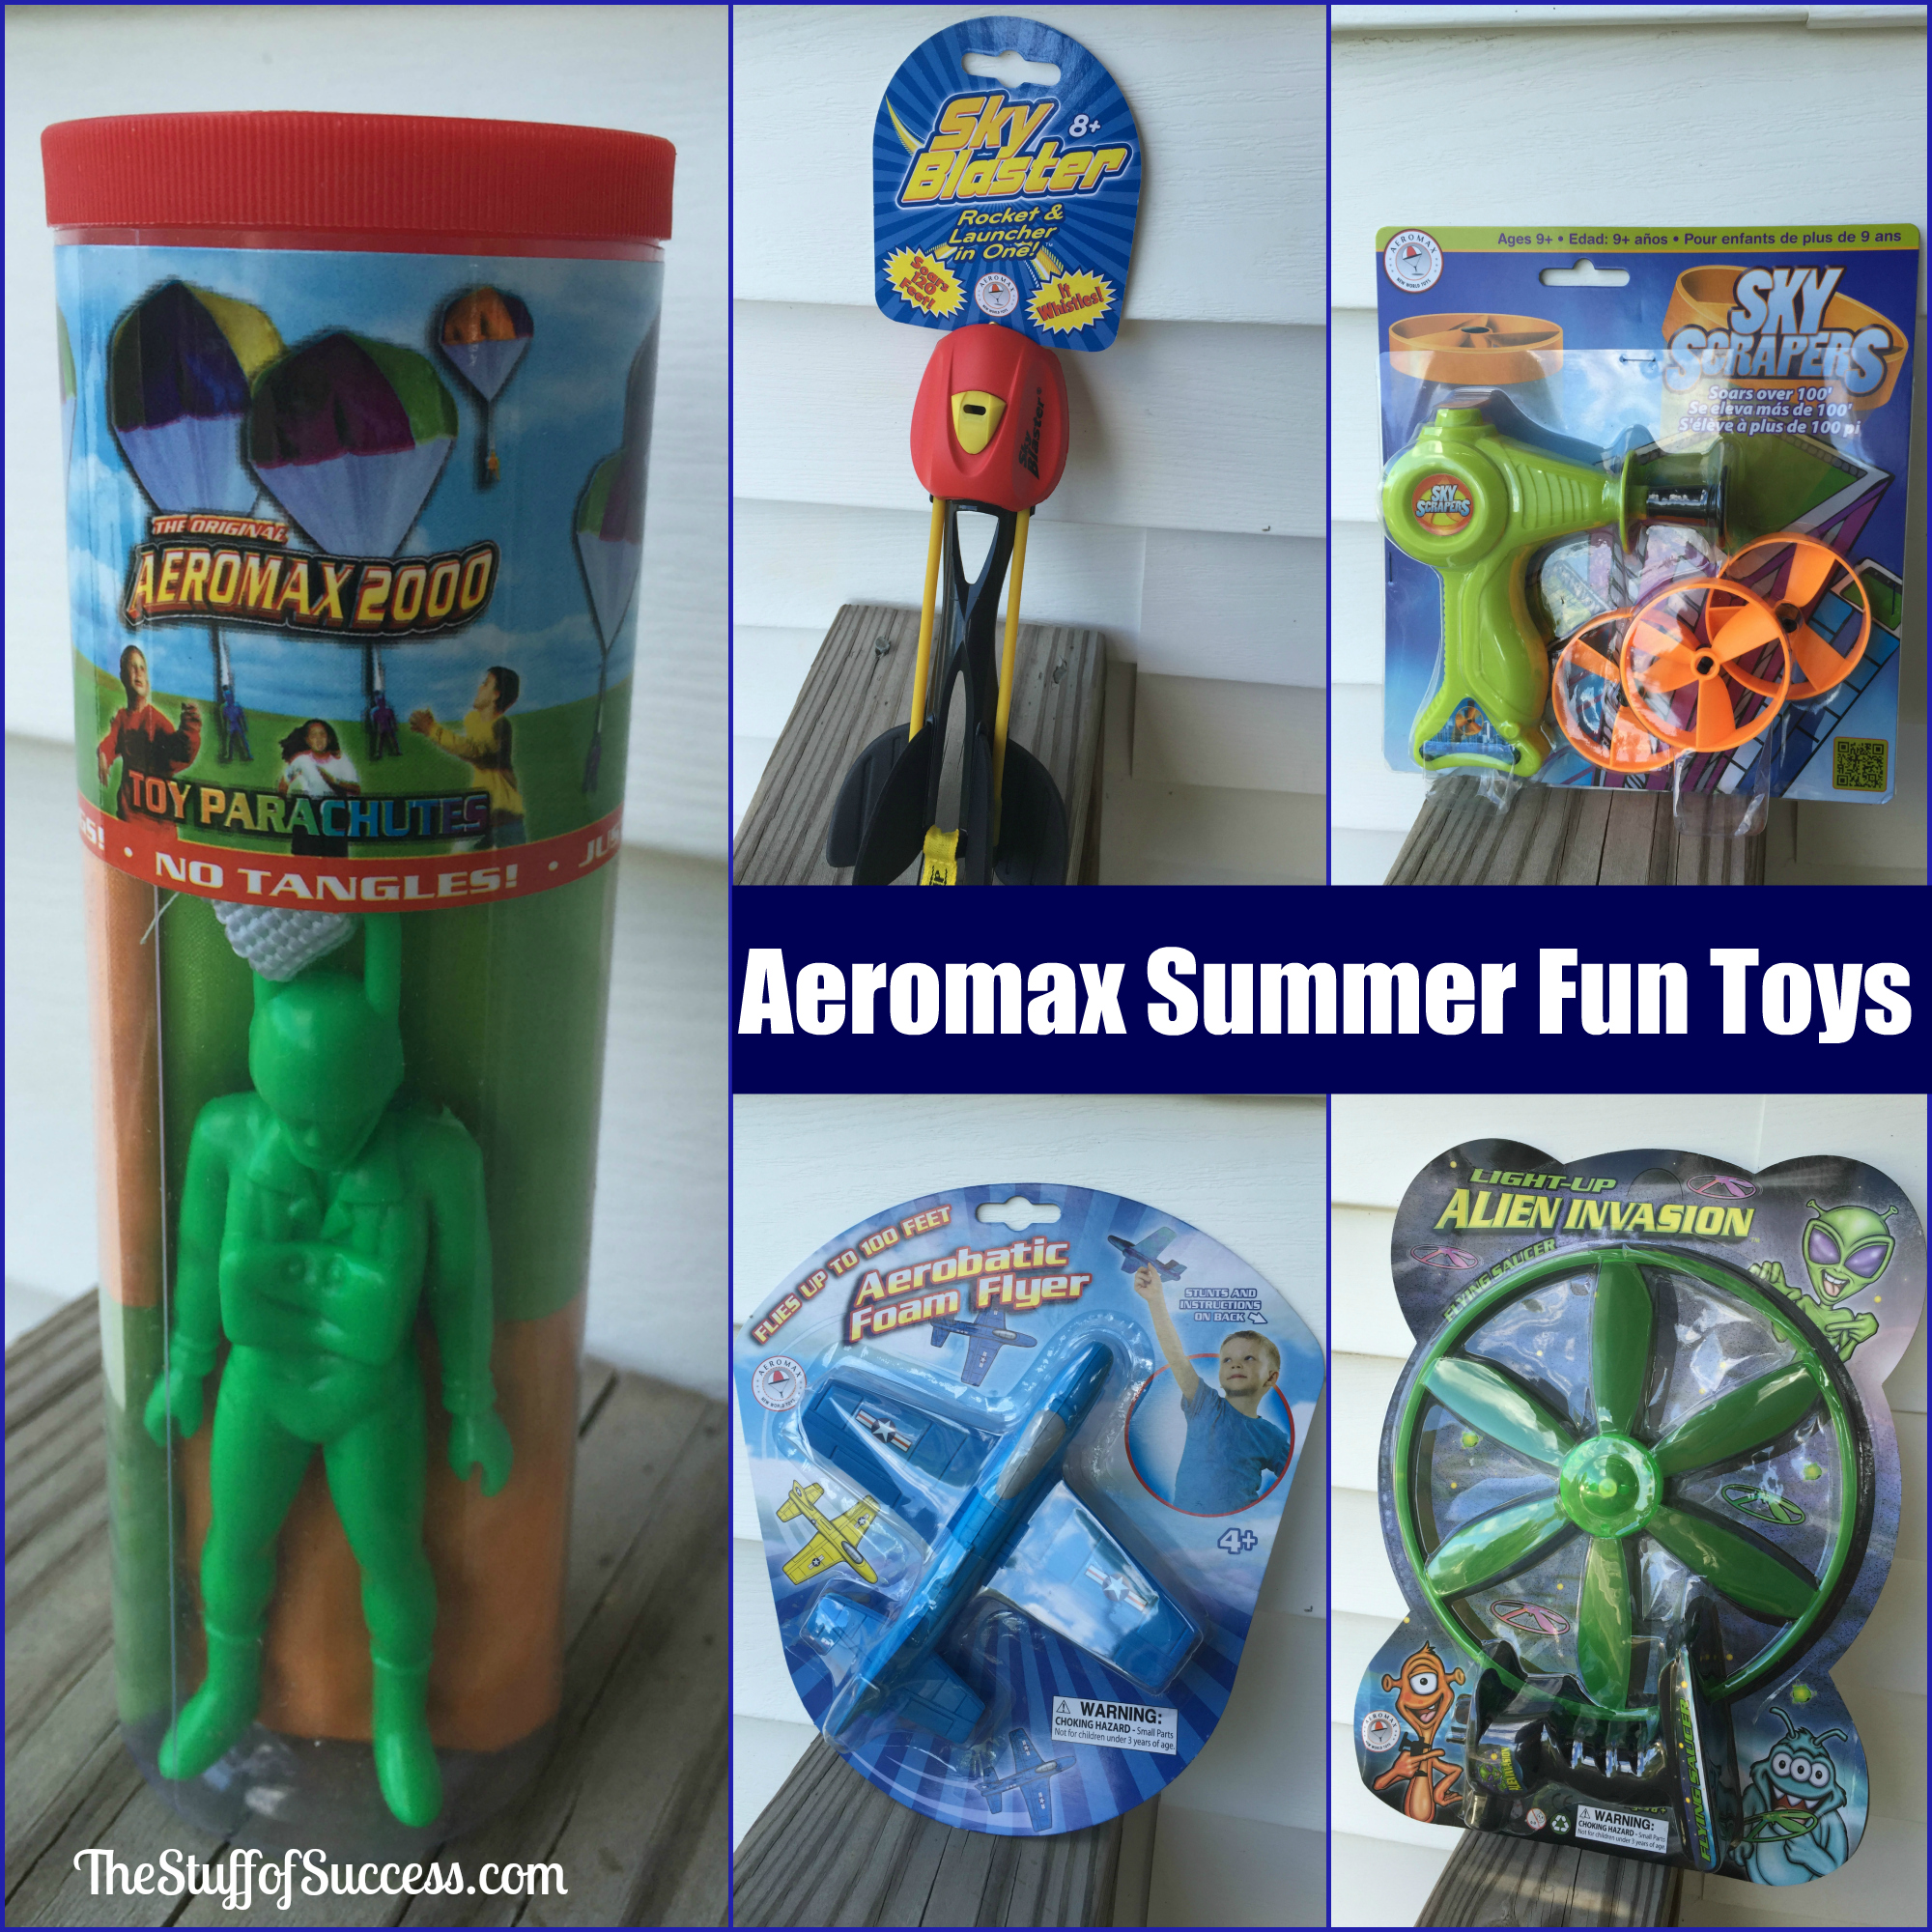 Aeromax Summer Fun Toys